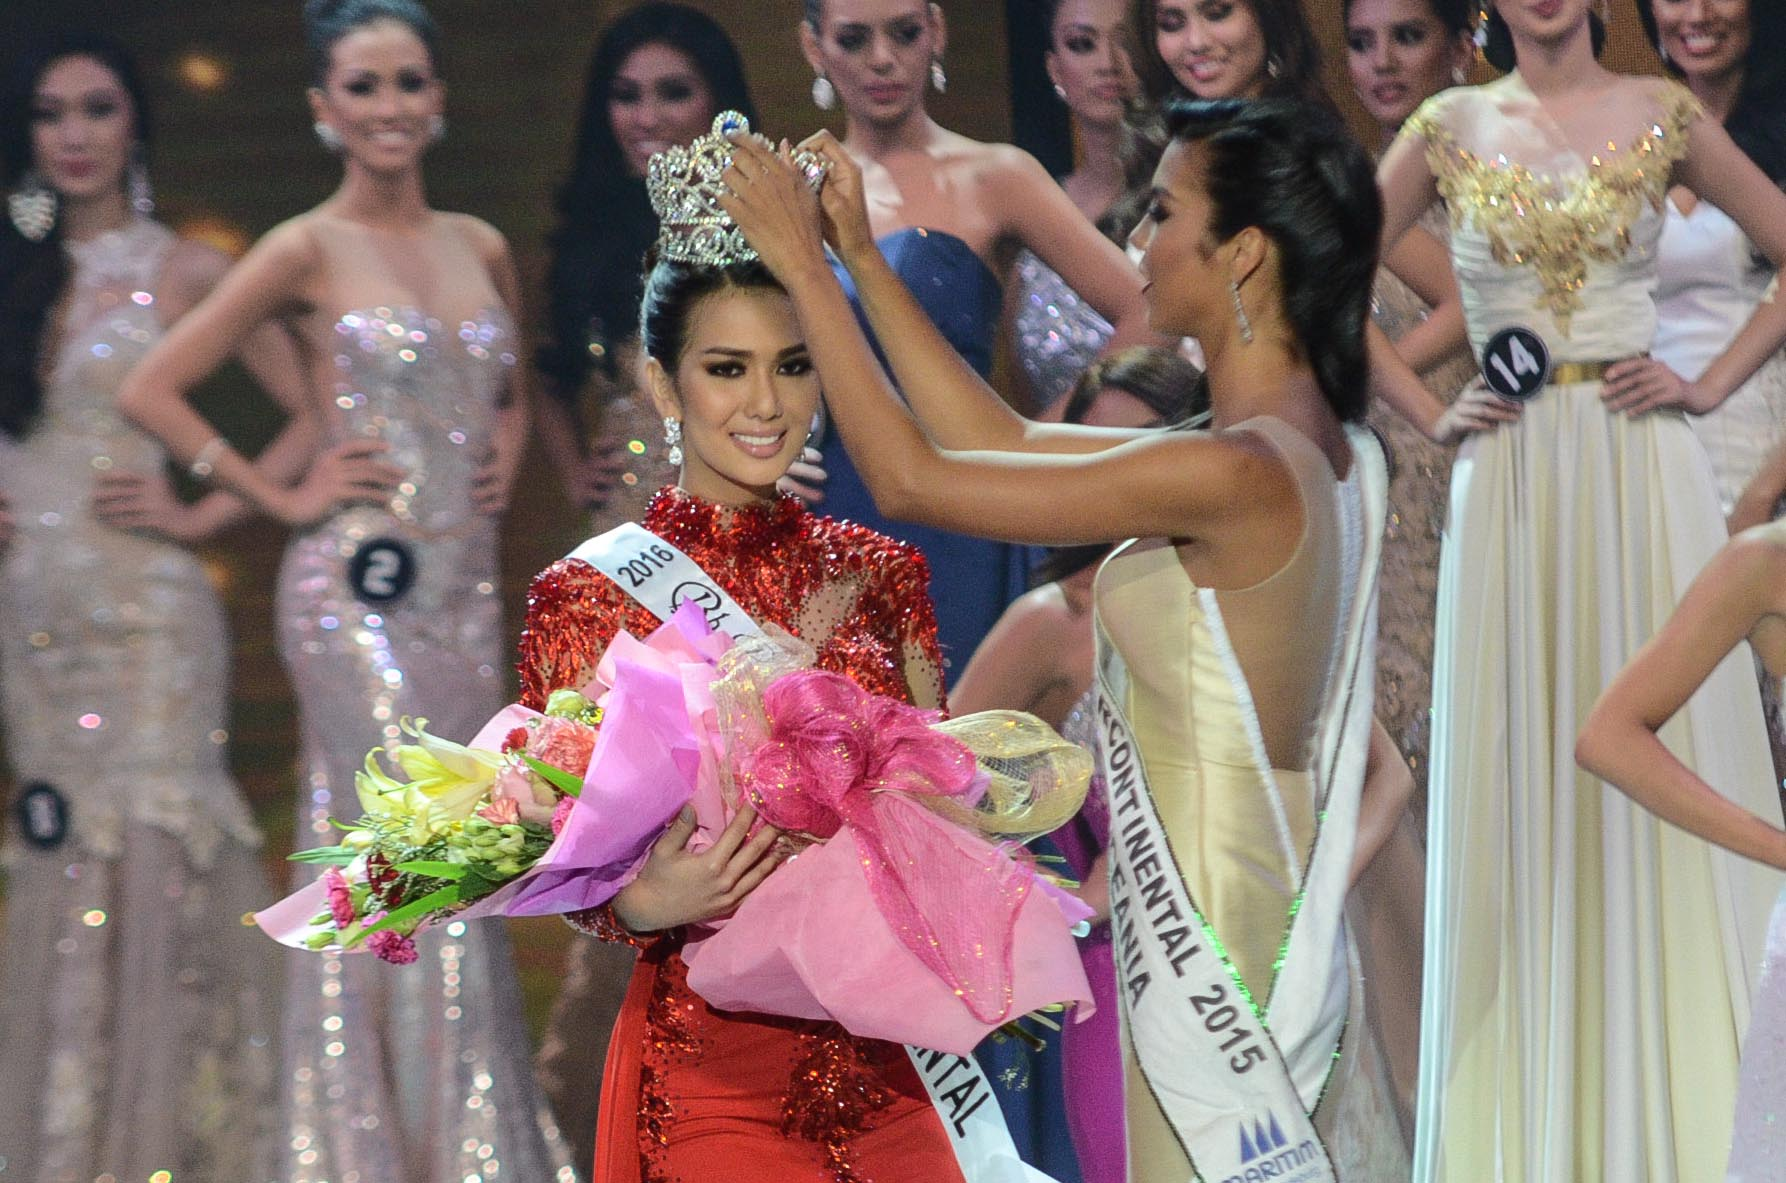 Jennifer Hammond being crowned by last year's winner Christi Lynn McGarry. Photo by Alecs Ongcal/Rappler